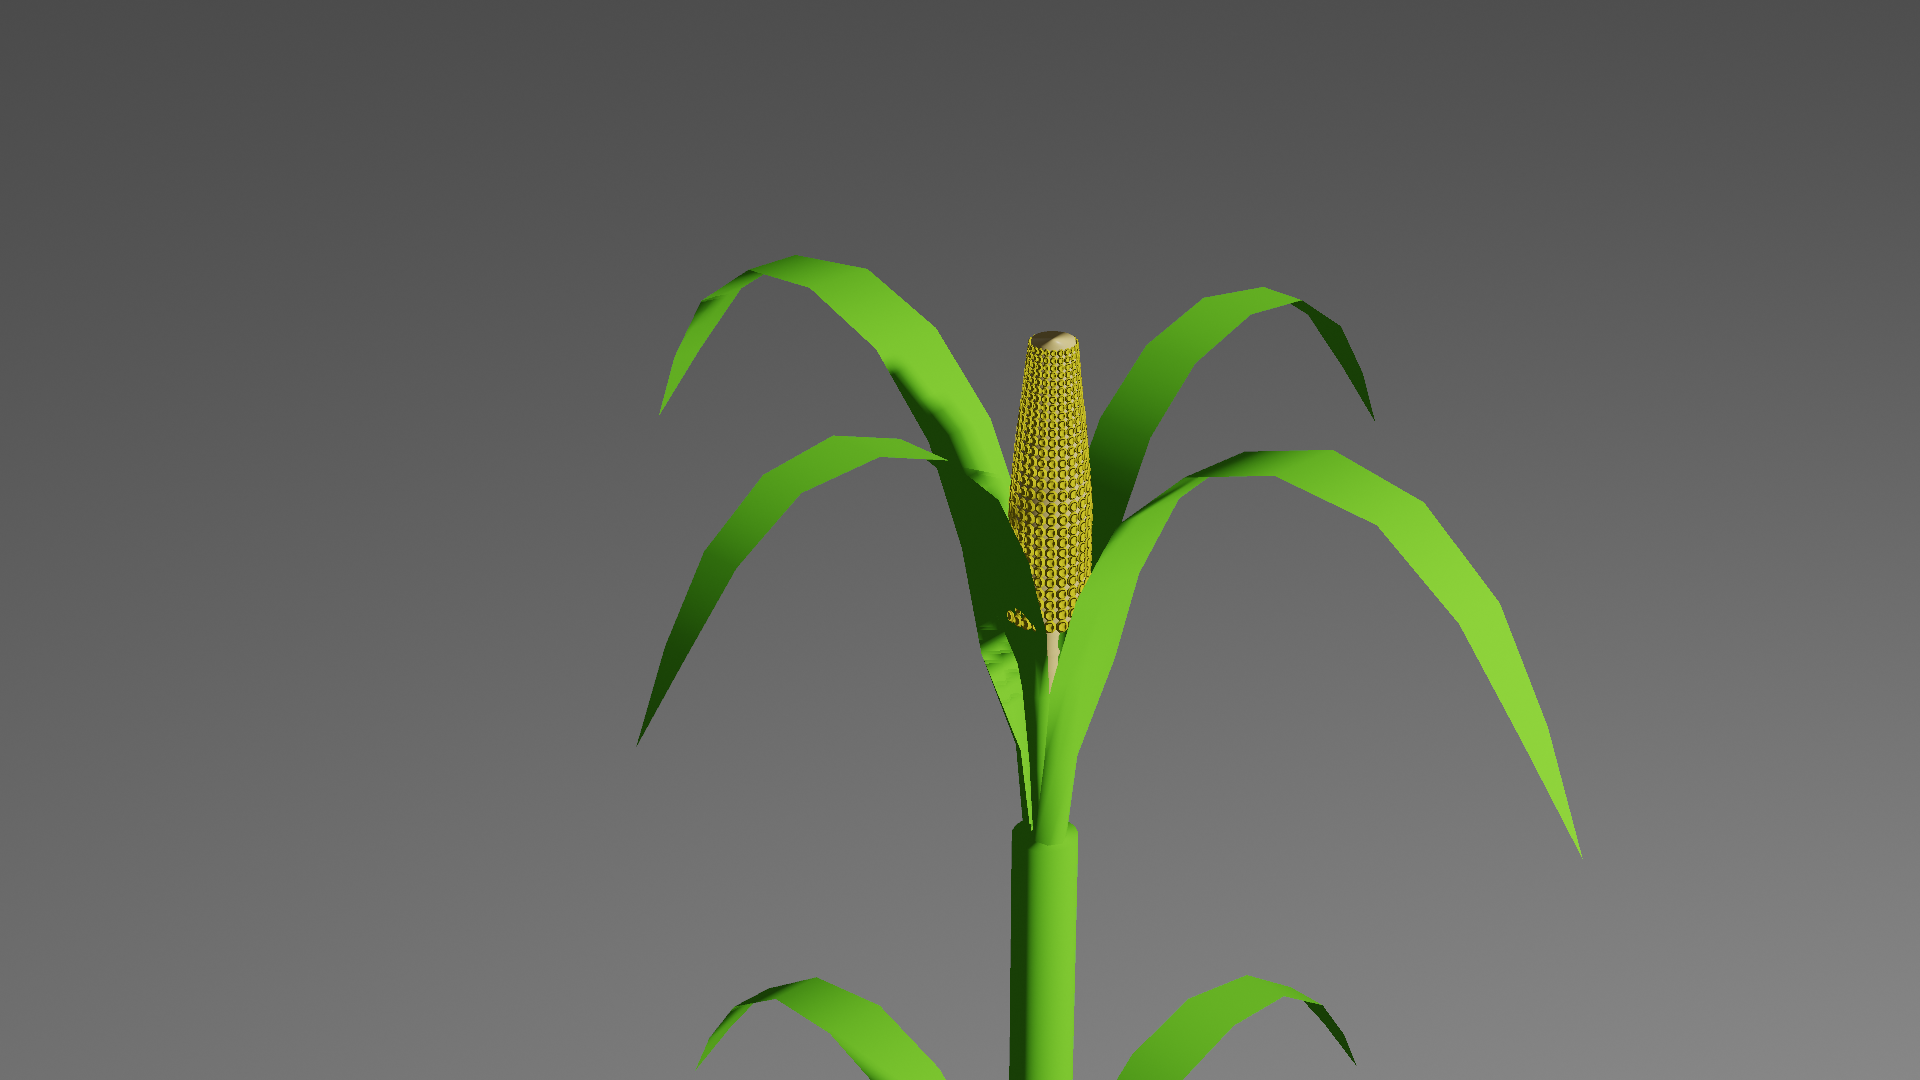 plants preview image 3